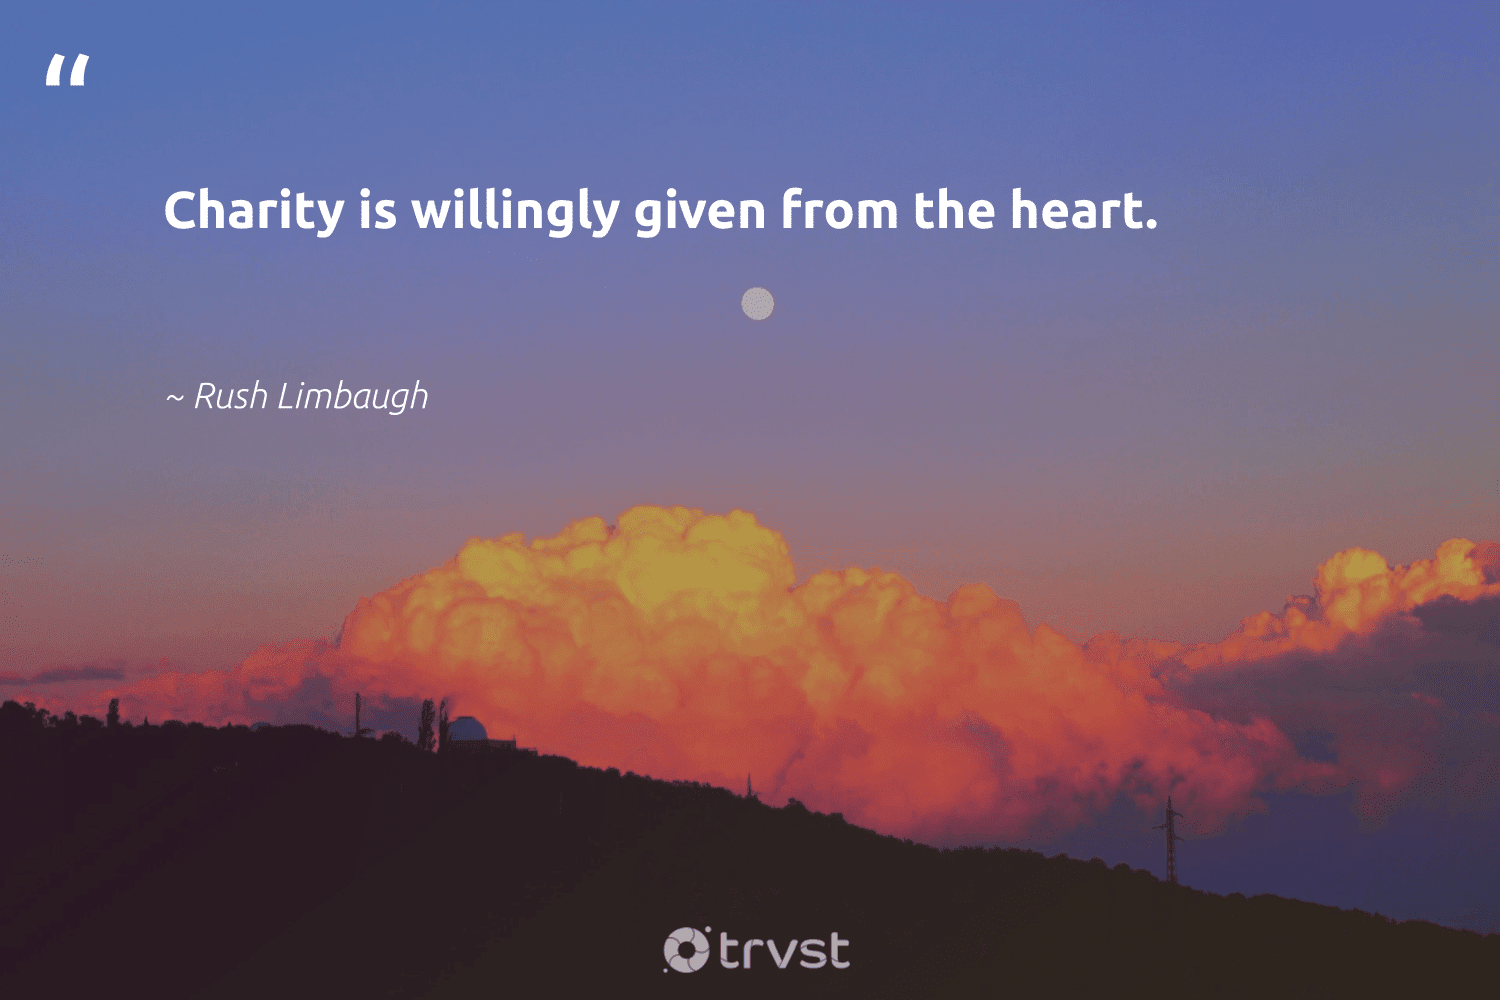 """""""Charity is willingly given from the heart.""""  - Rush Limbaugh #trvst #quotes #betterplanet #dosomething #equalopportunity #dotherightthing #workingtogether #changetheworld #communities #ecoconscious #society #gogreen"""